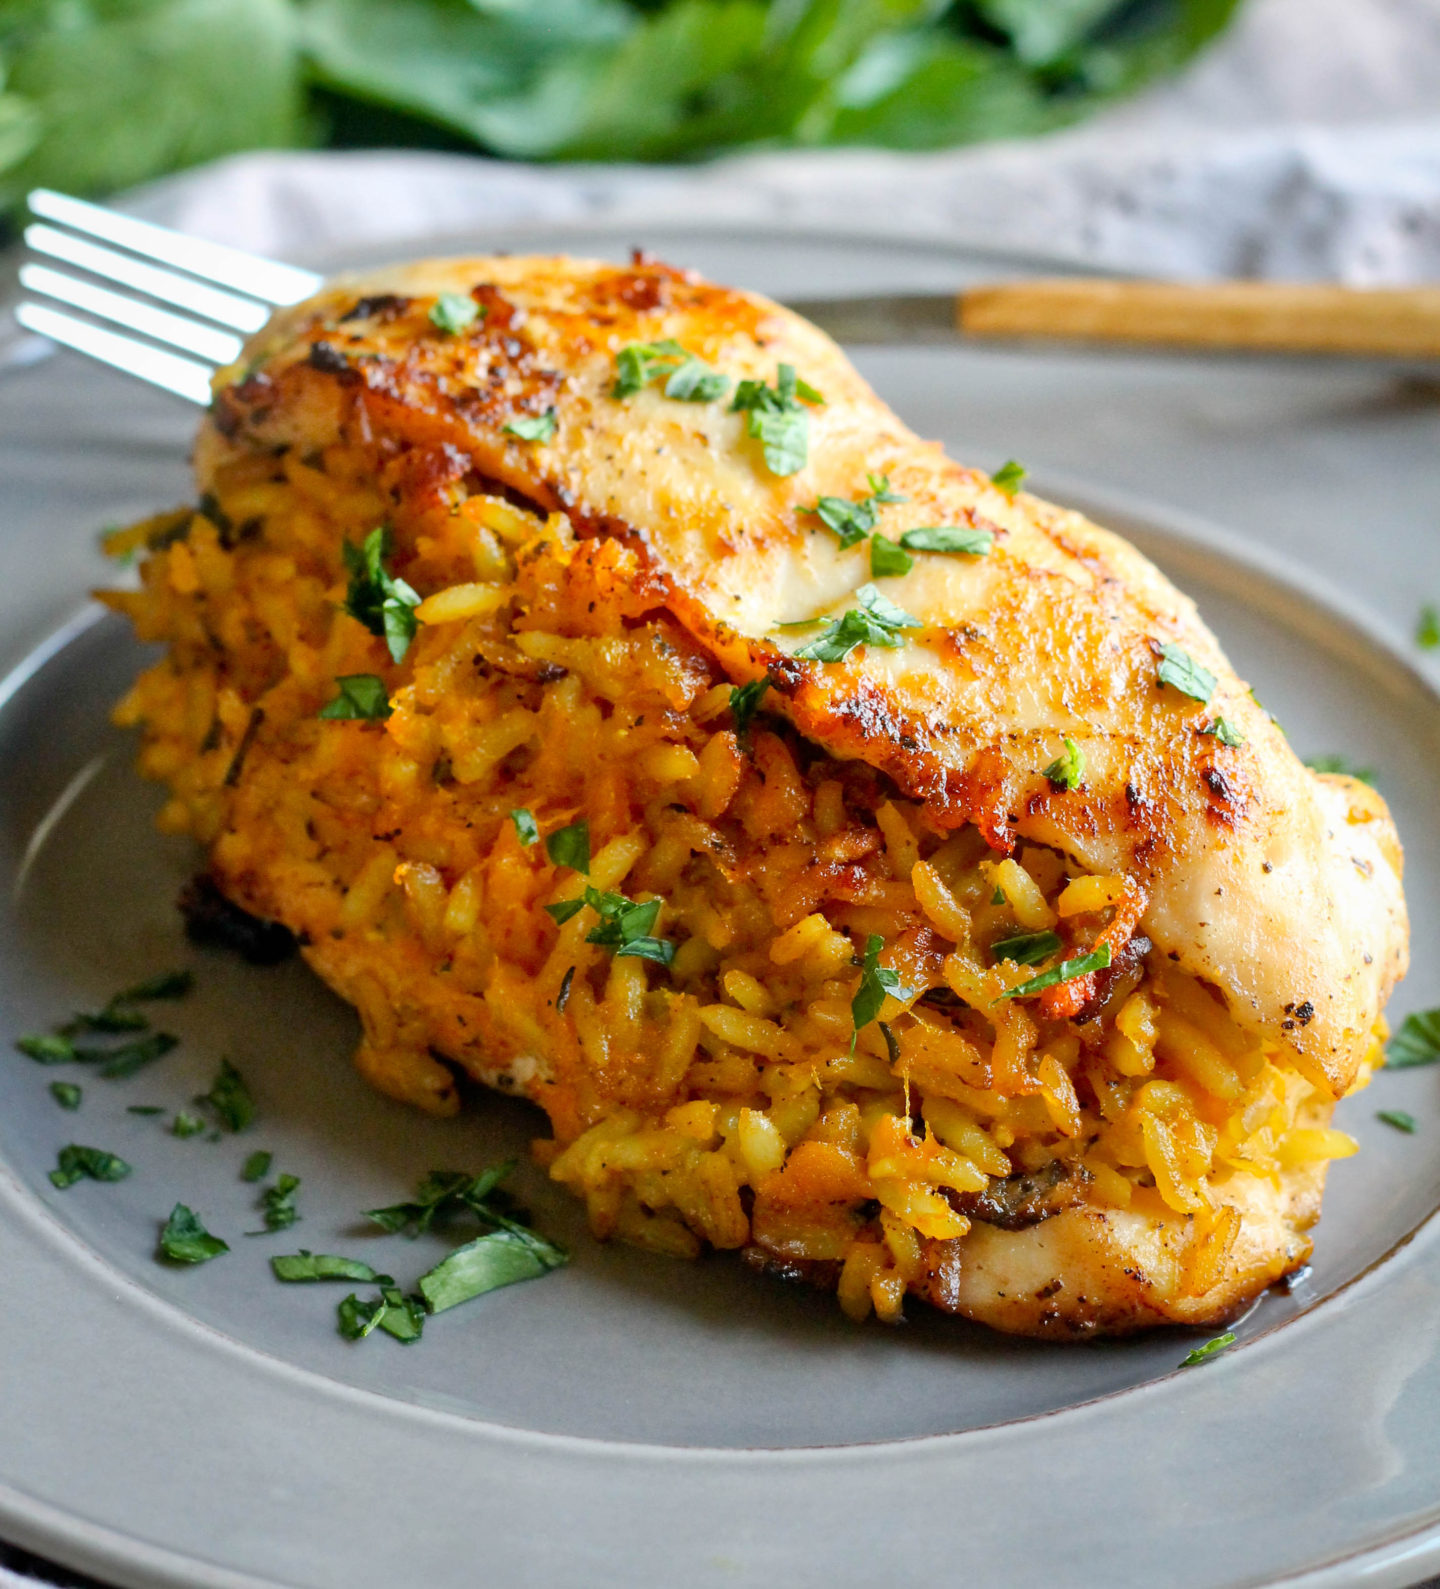 PUMPKIN RICE STUFFED CHICKEN BREAST